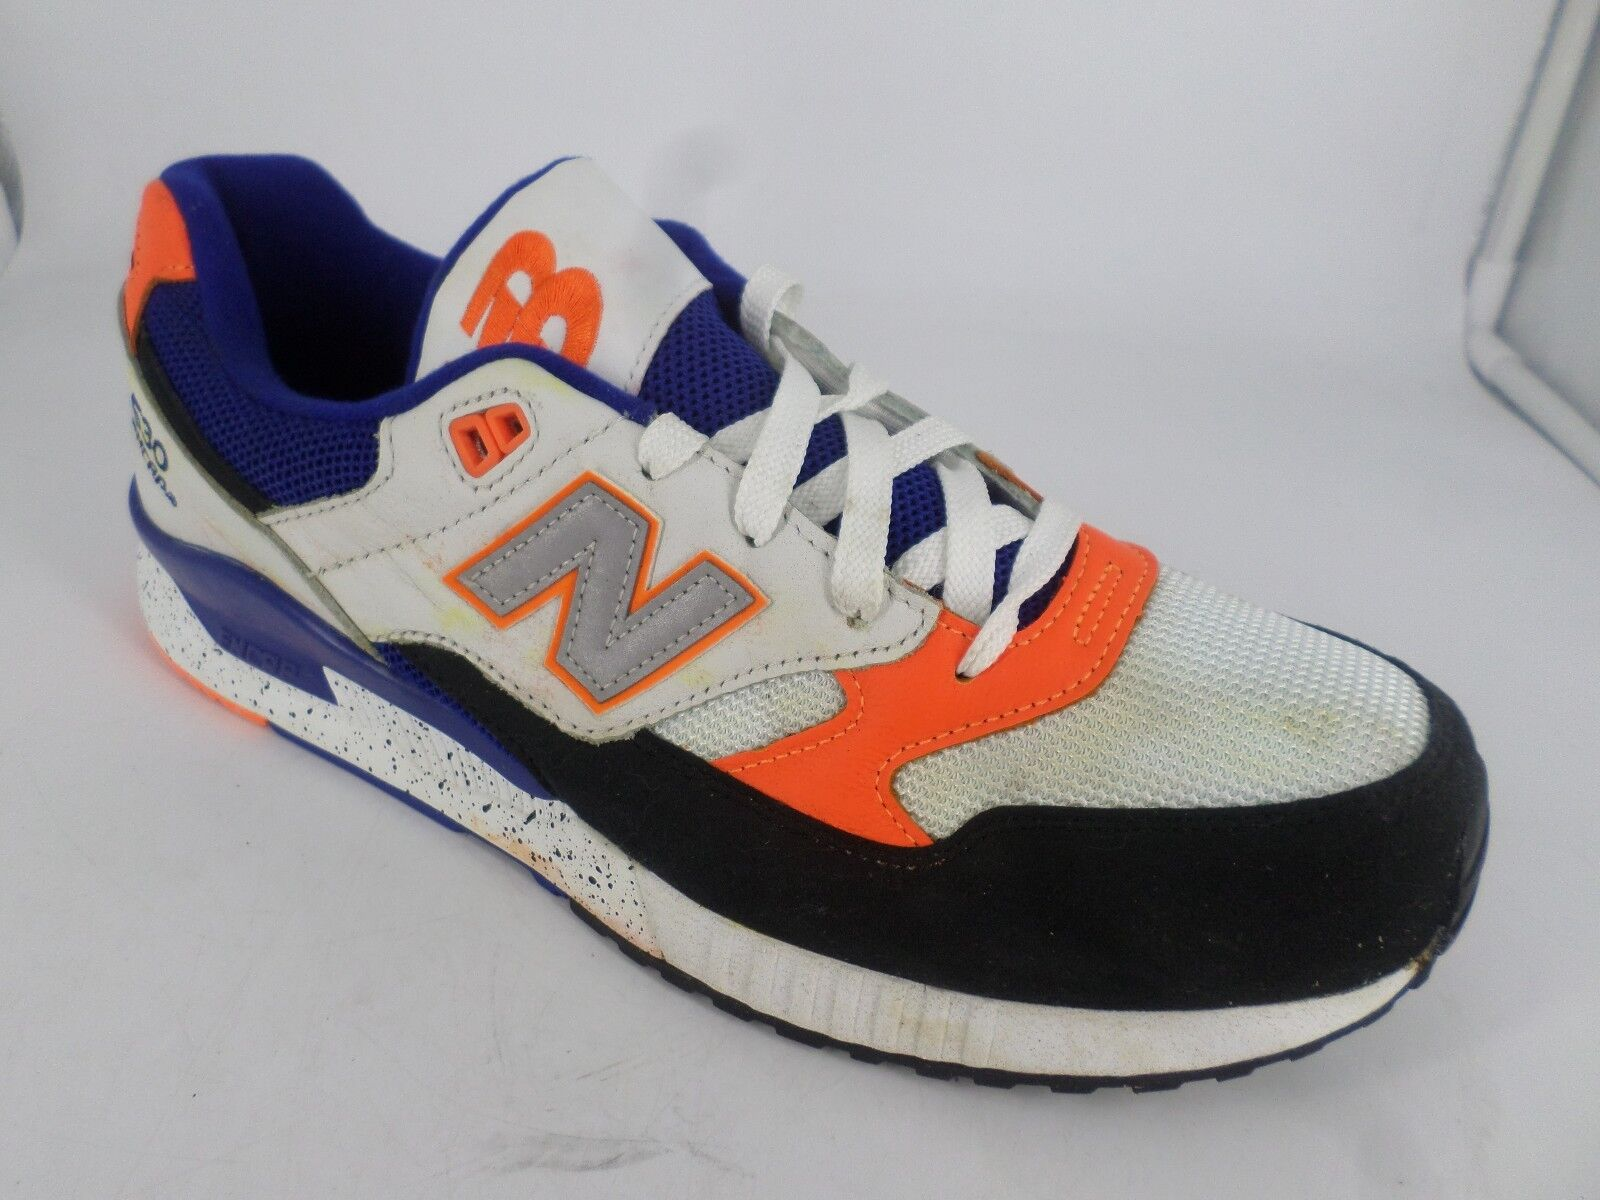 New Balance 530 Encap Trainers White, bluee & orange LN087 UU 10